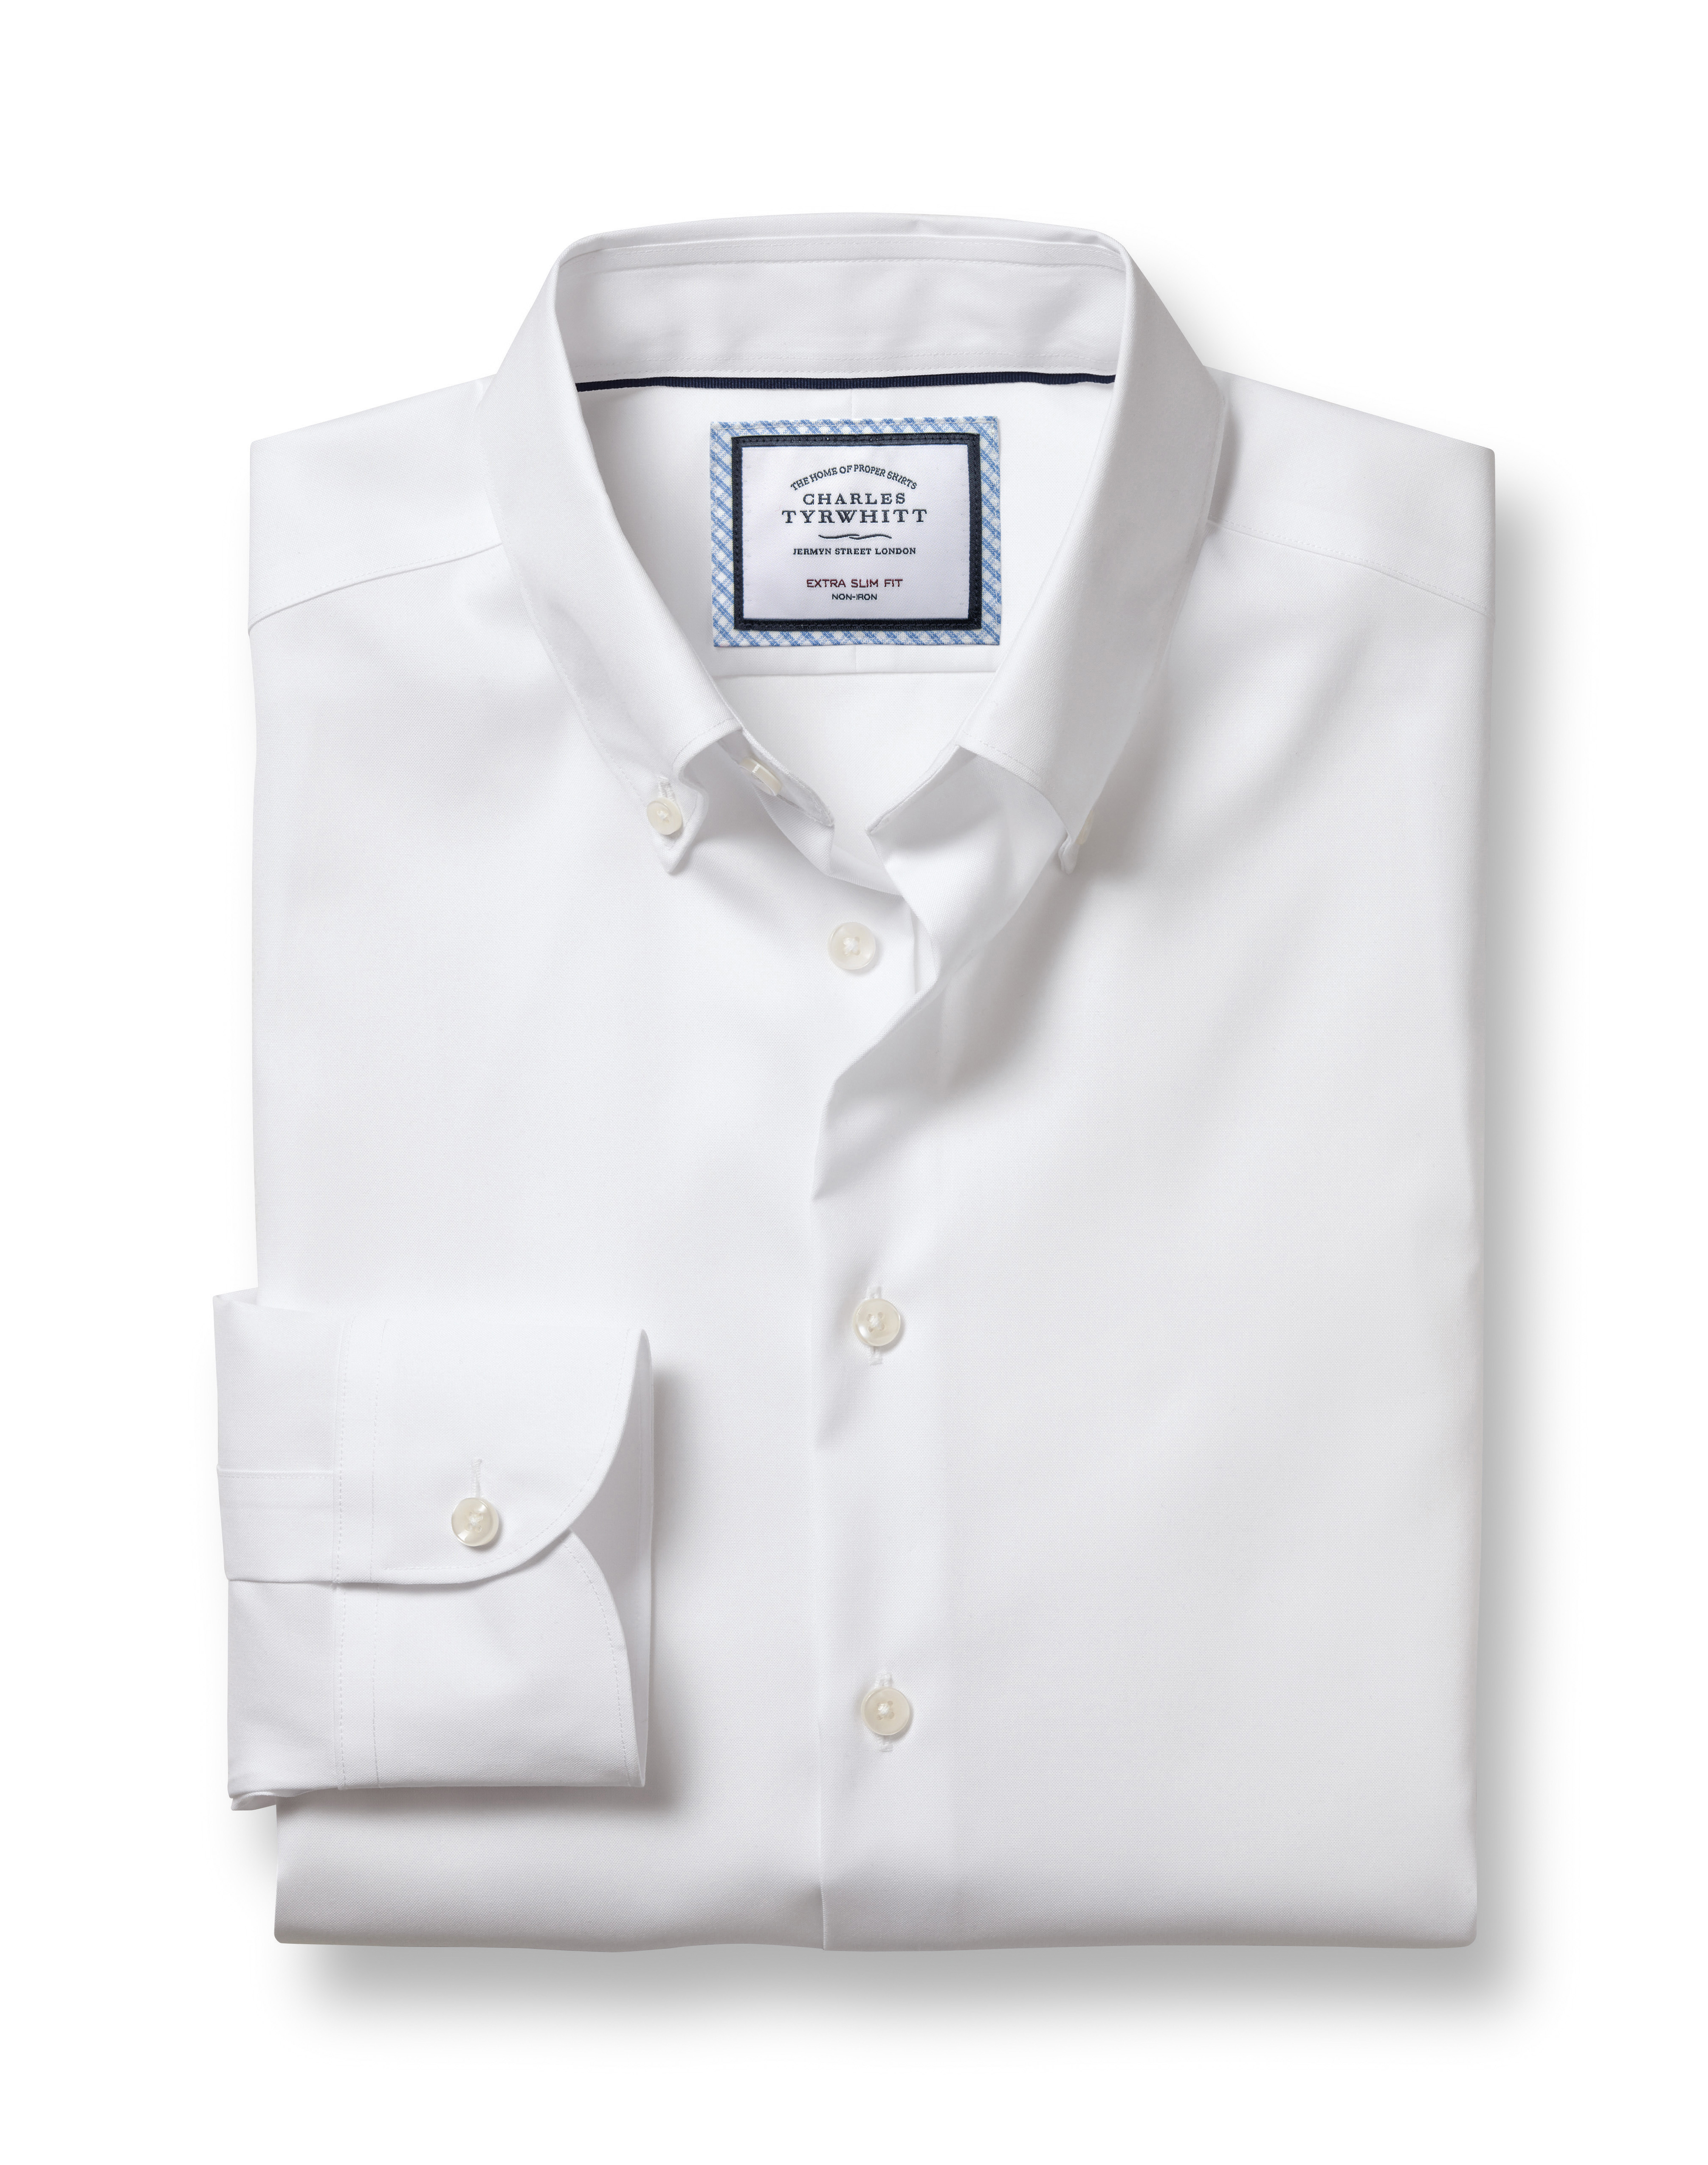 Extra Slim Fit Button-Down Business Casual Non-Iron White Cotton Formal Shirt Single Cuff Size 15/32